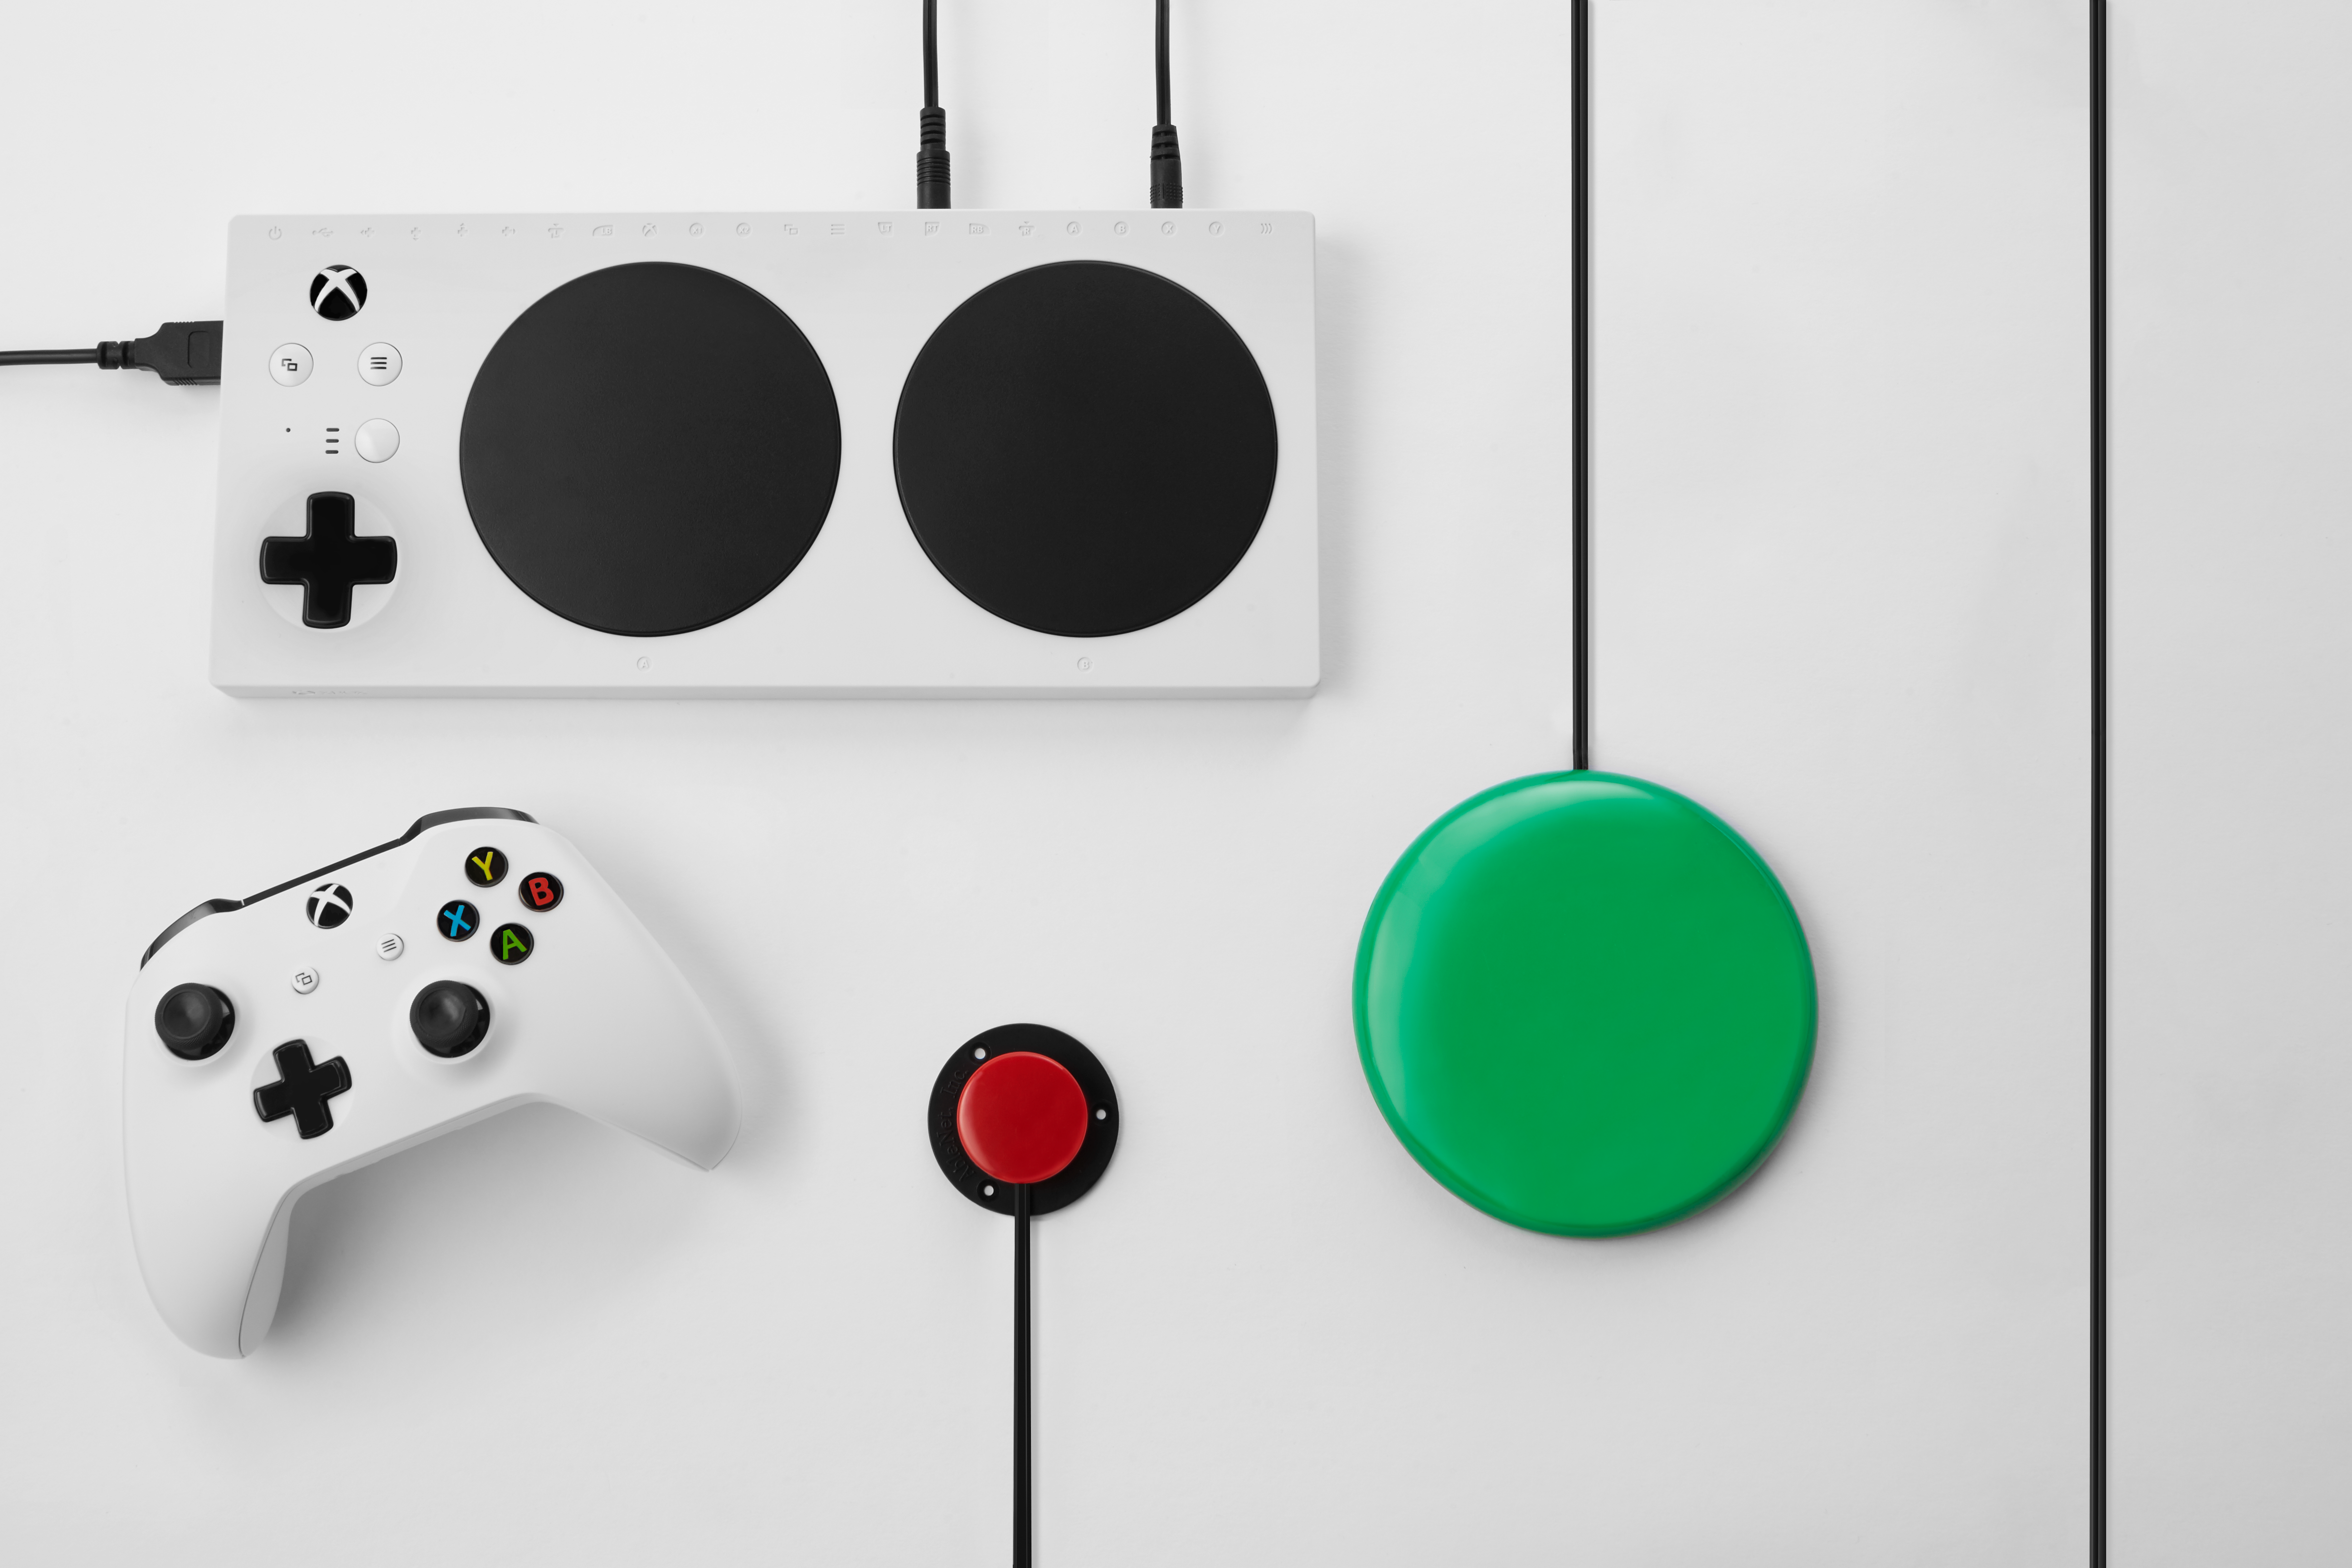 Xbox Adaptive Controller with Accessories V2